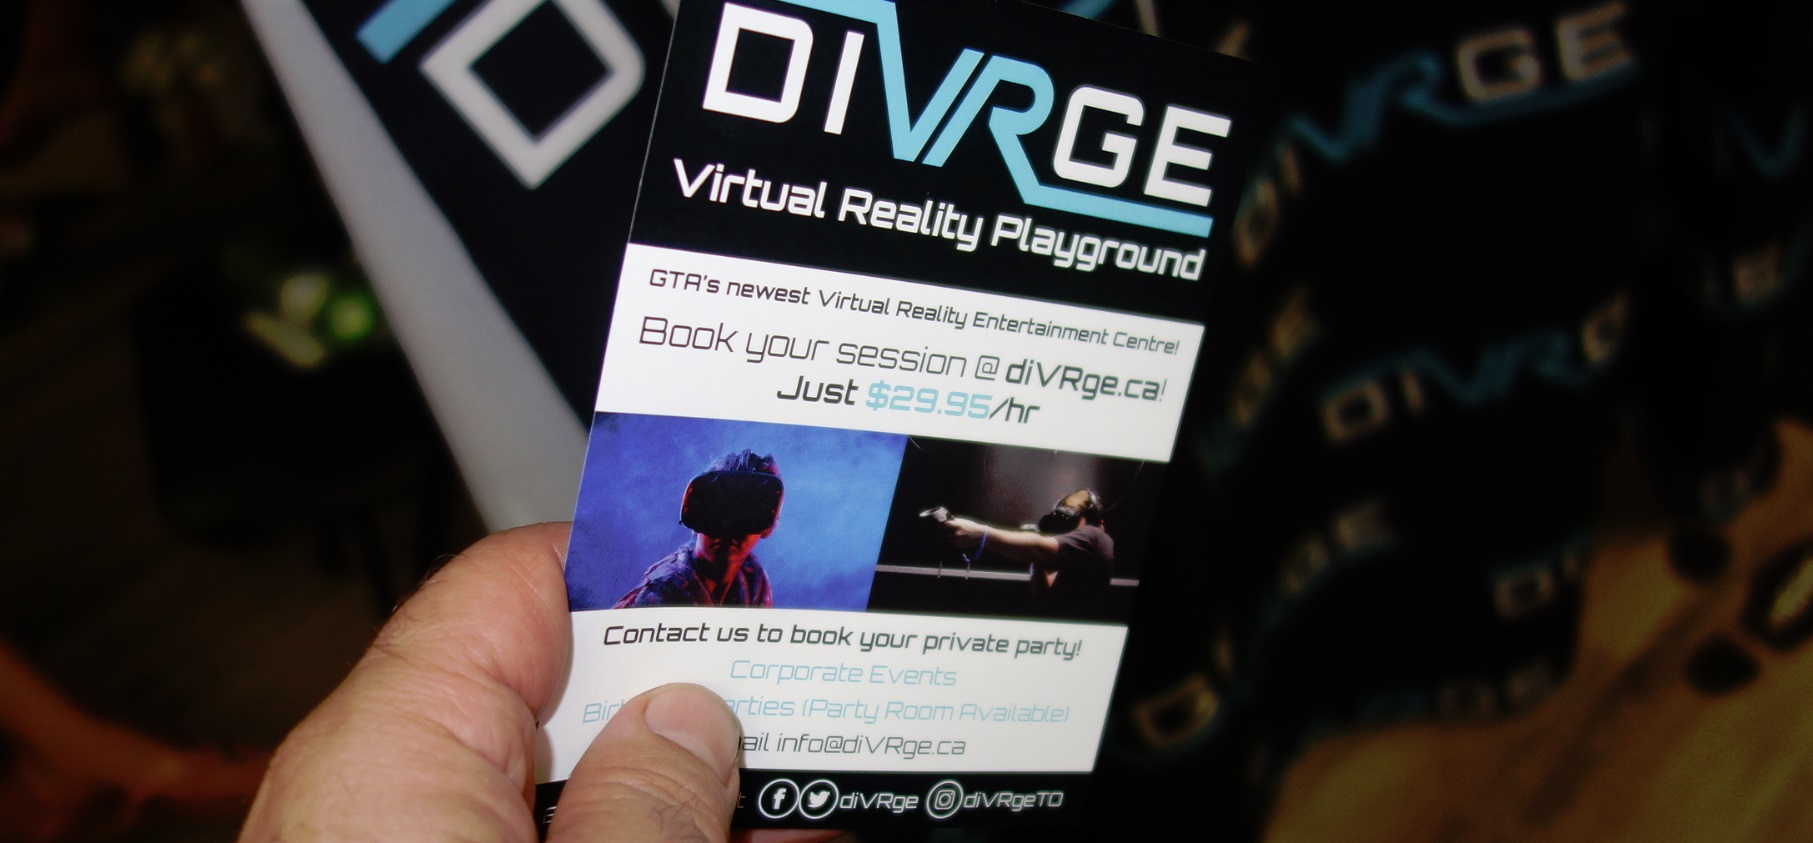 Virtual Reality gaming in Toronto for $30 hour per person